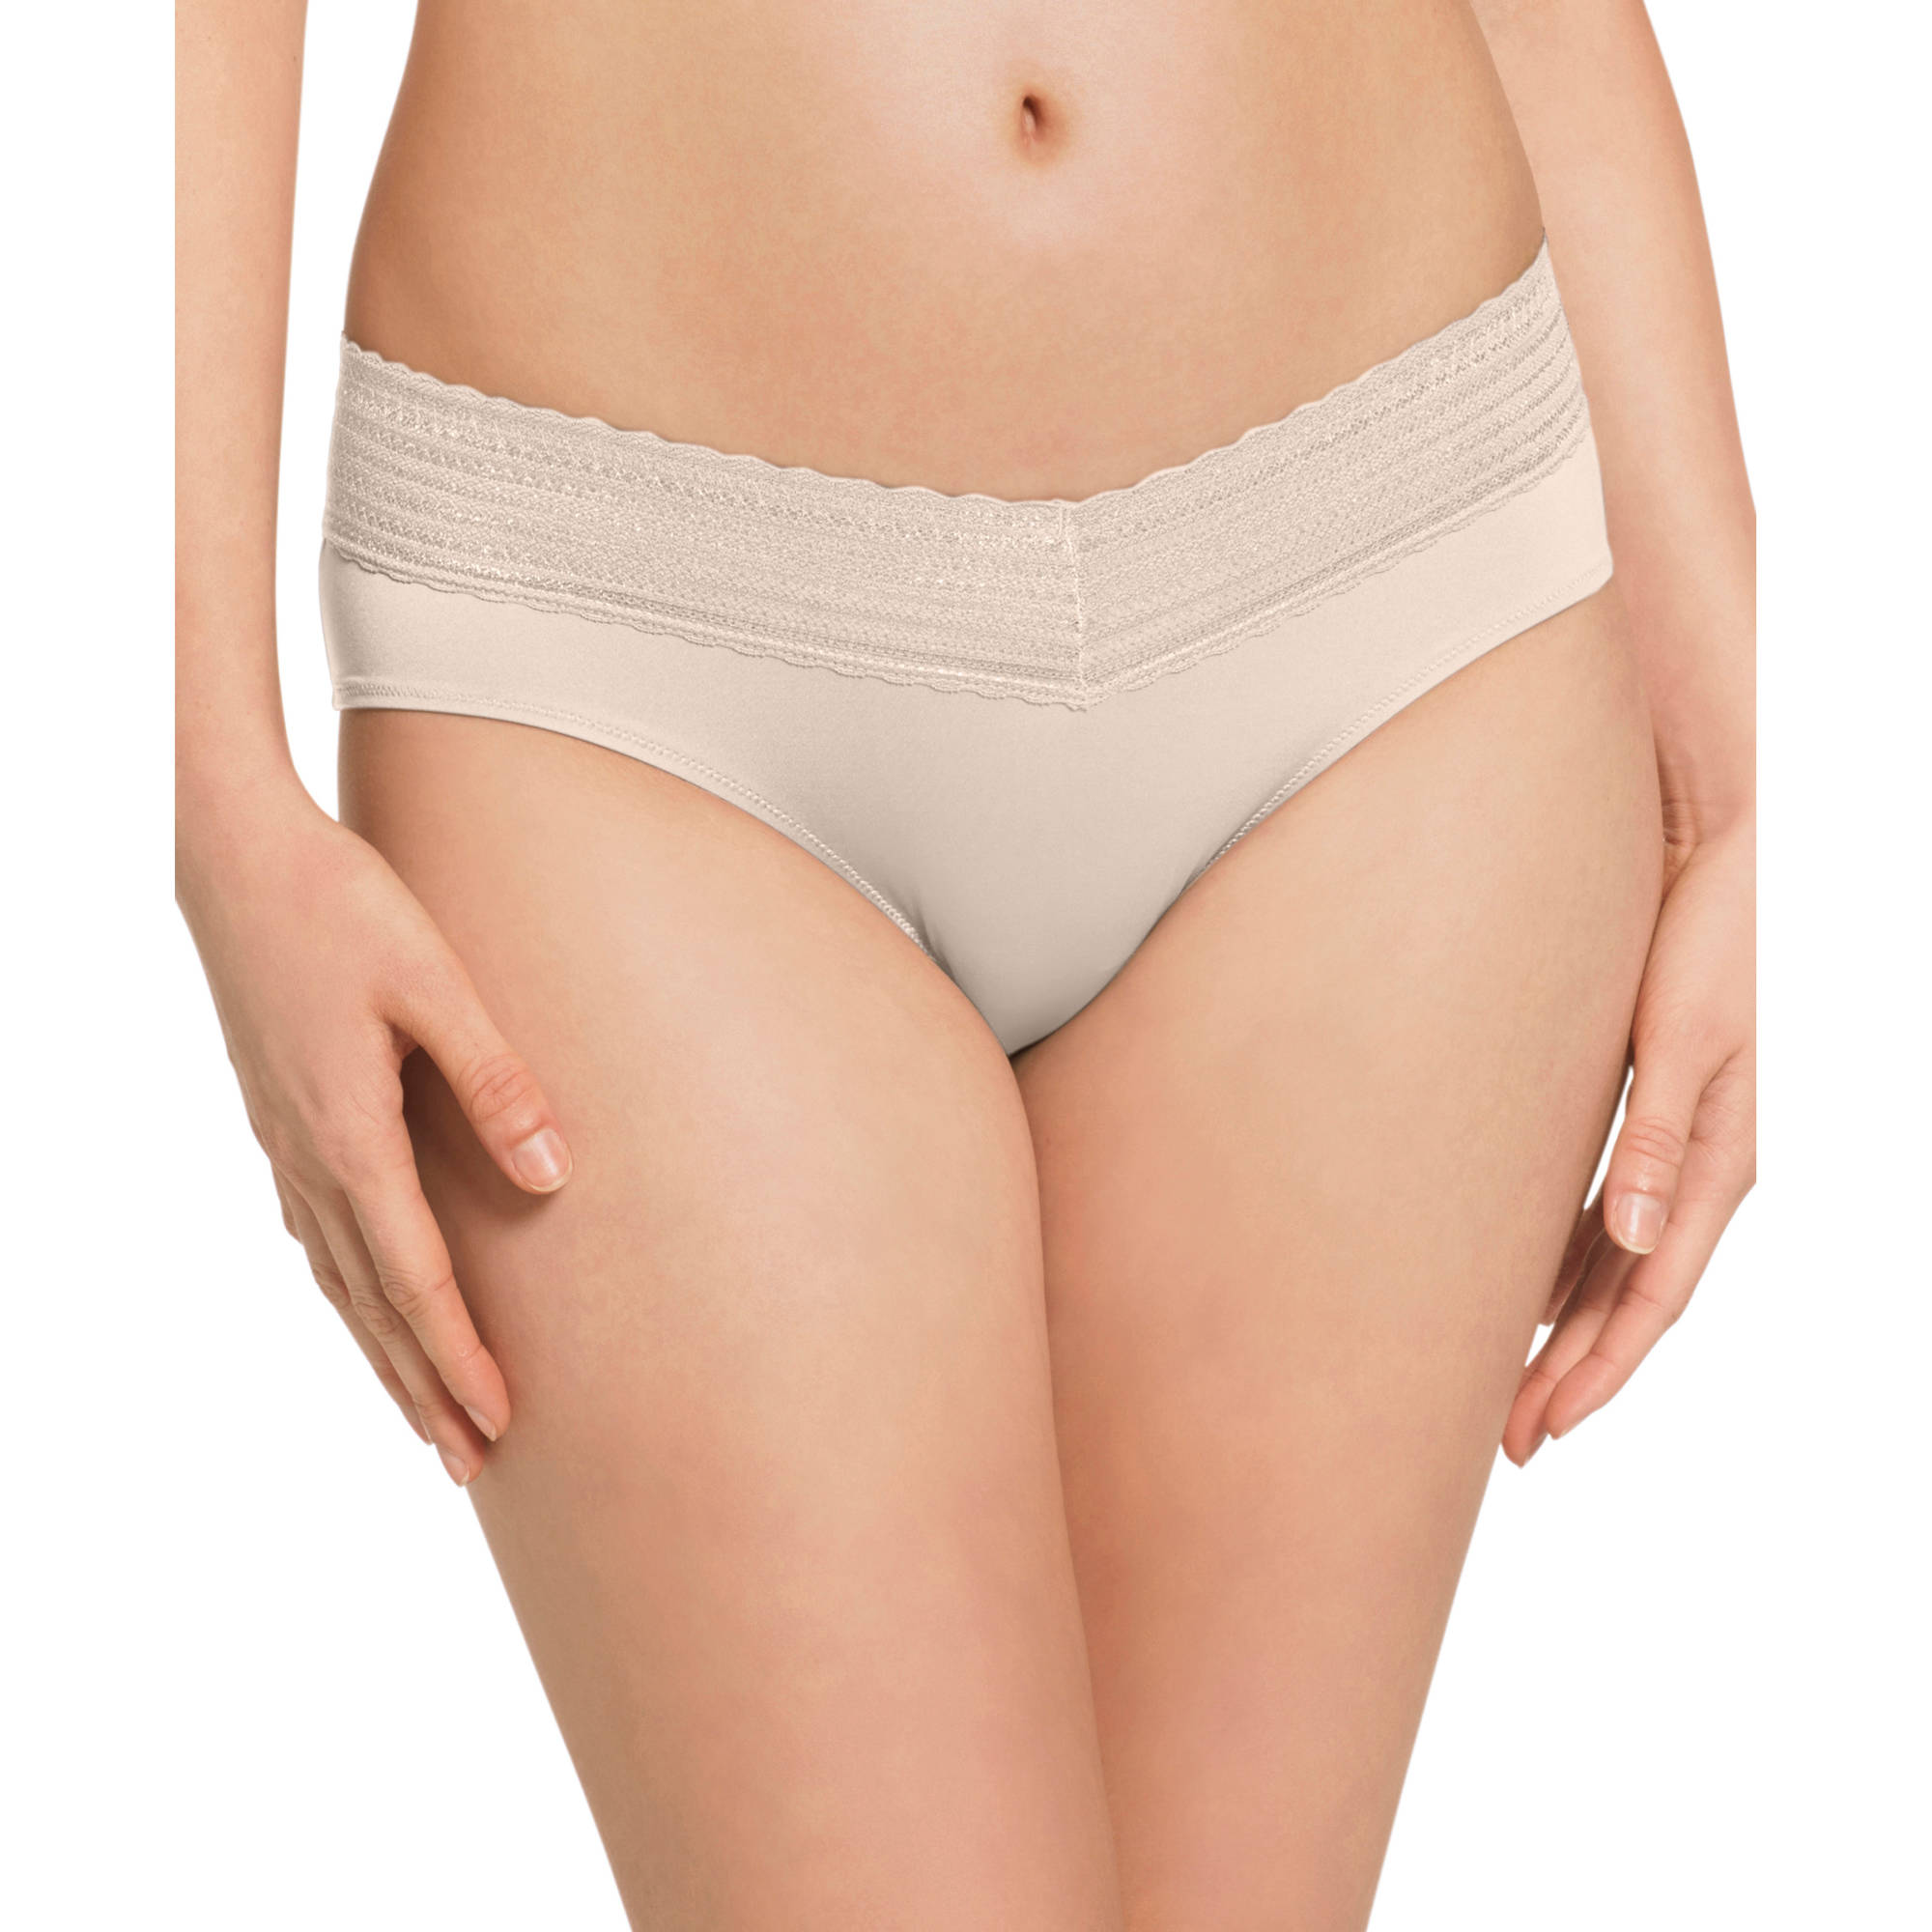 Blissful Benefits by Warner's No Muffin Top Hipster with Lace Panties